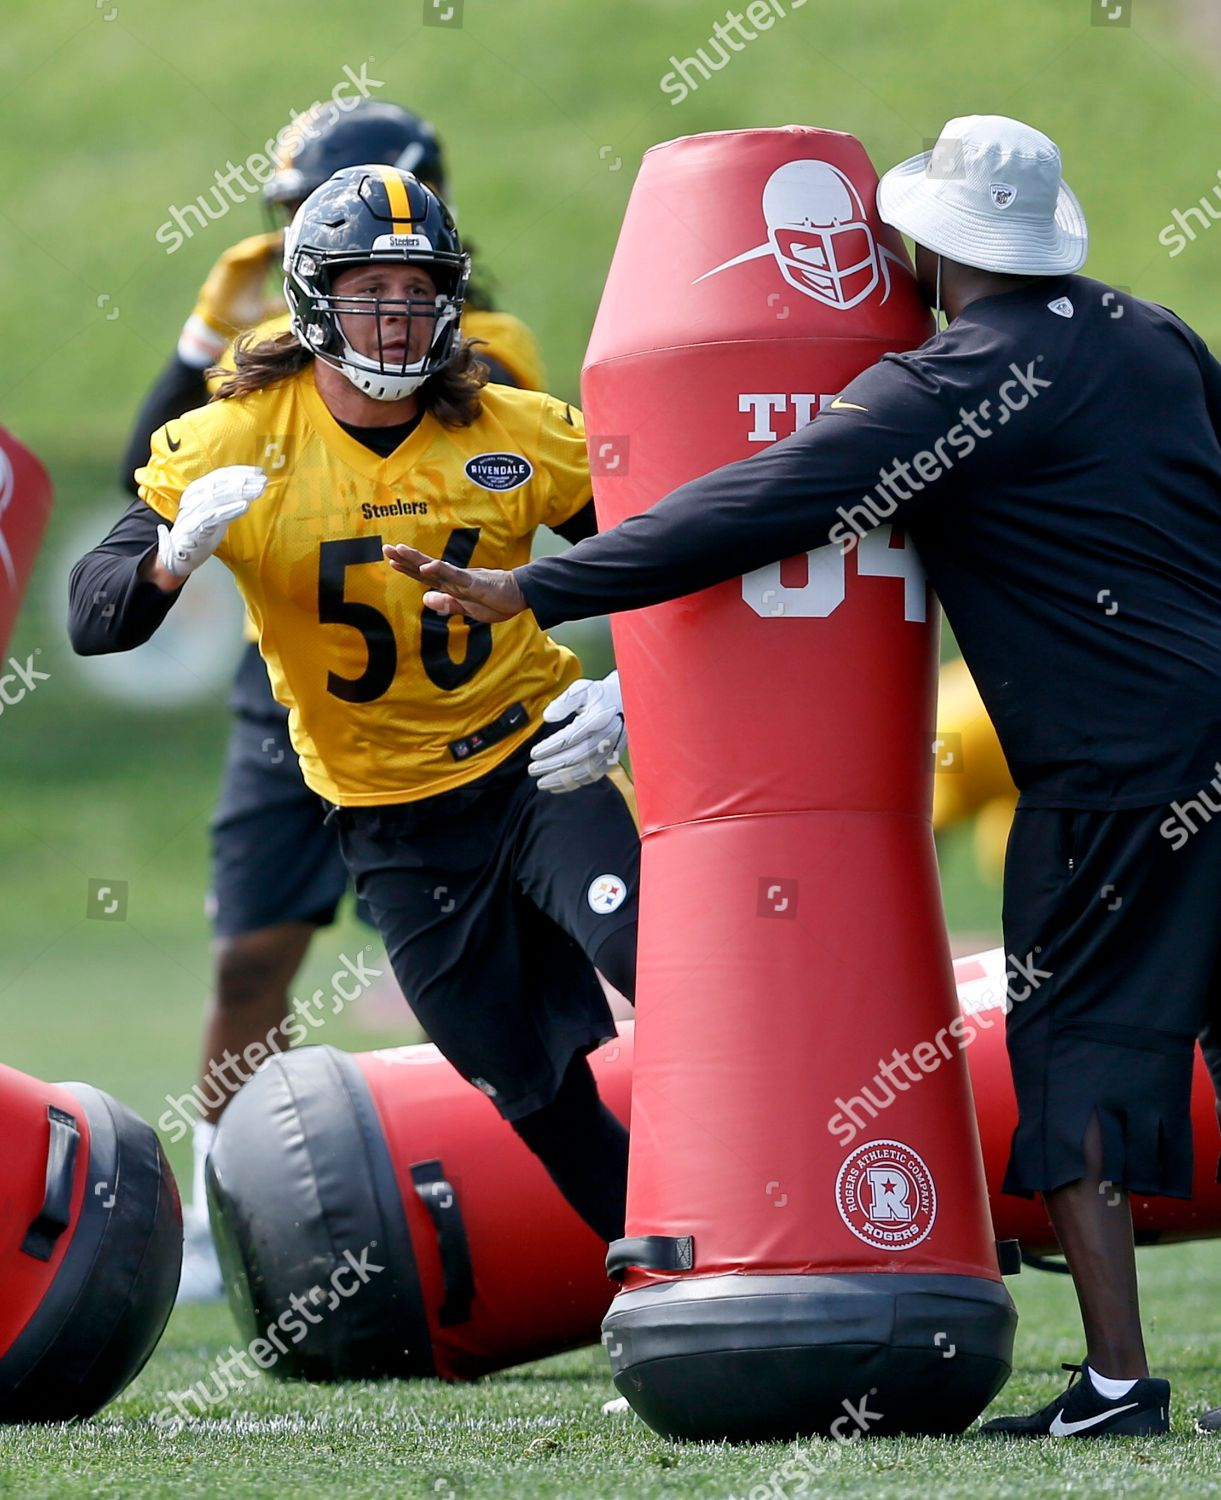 a38b51429 Pittsburgh Steelers linebacker Anthony Chickillo goes through ...